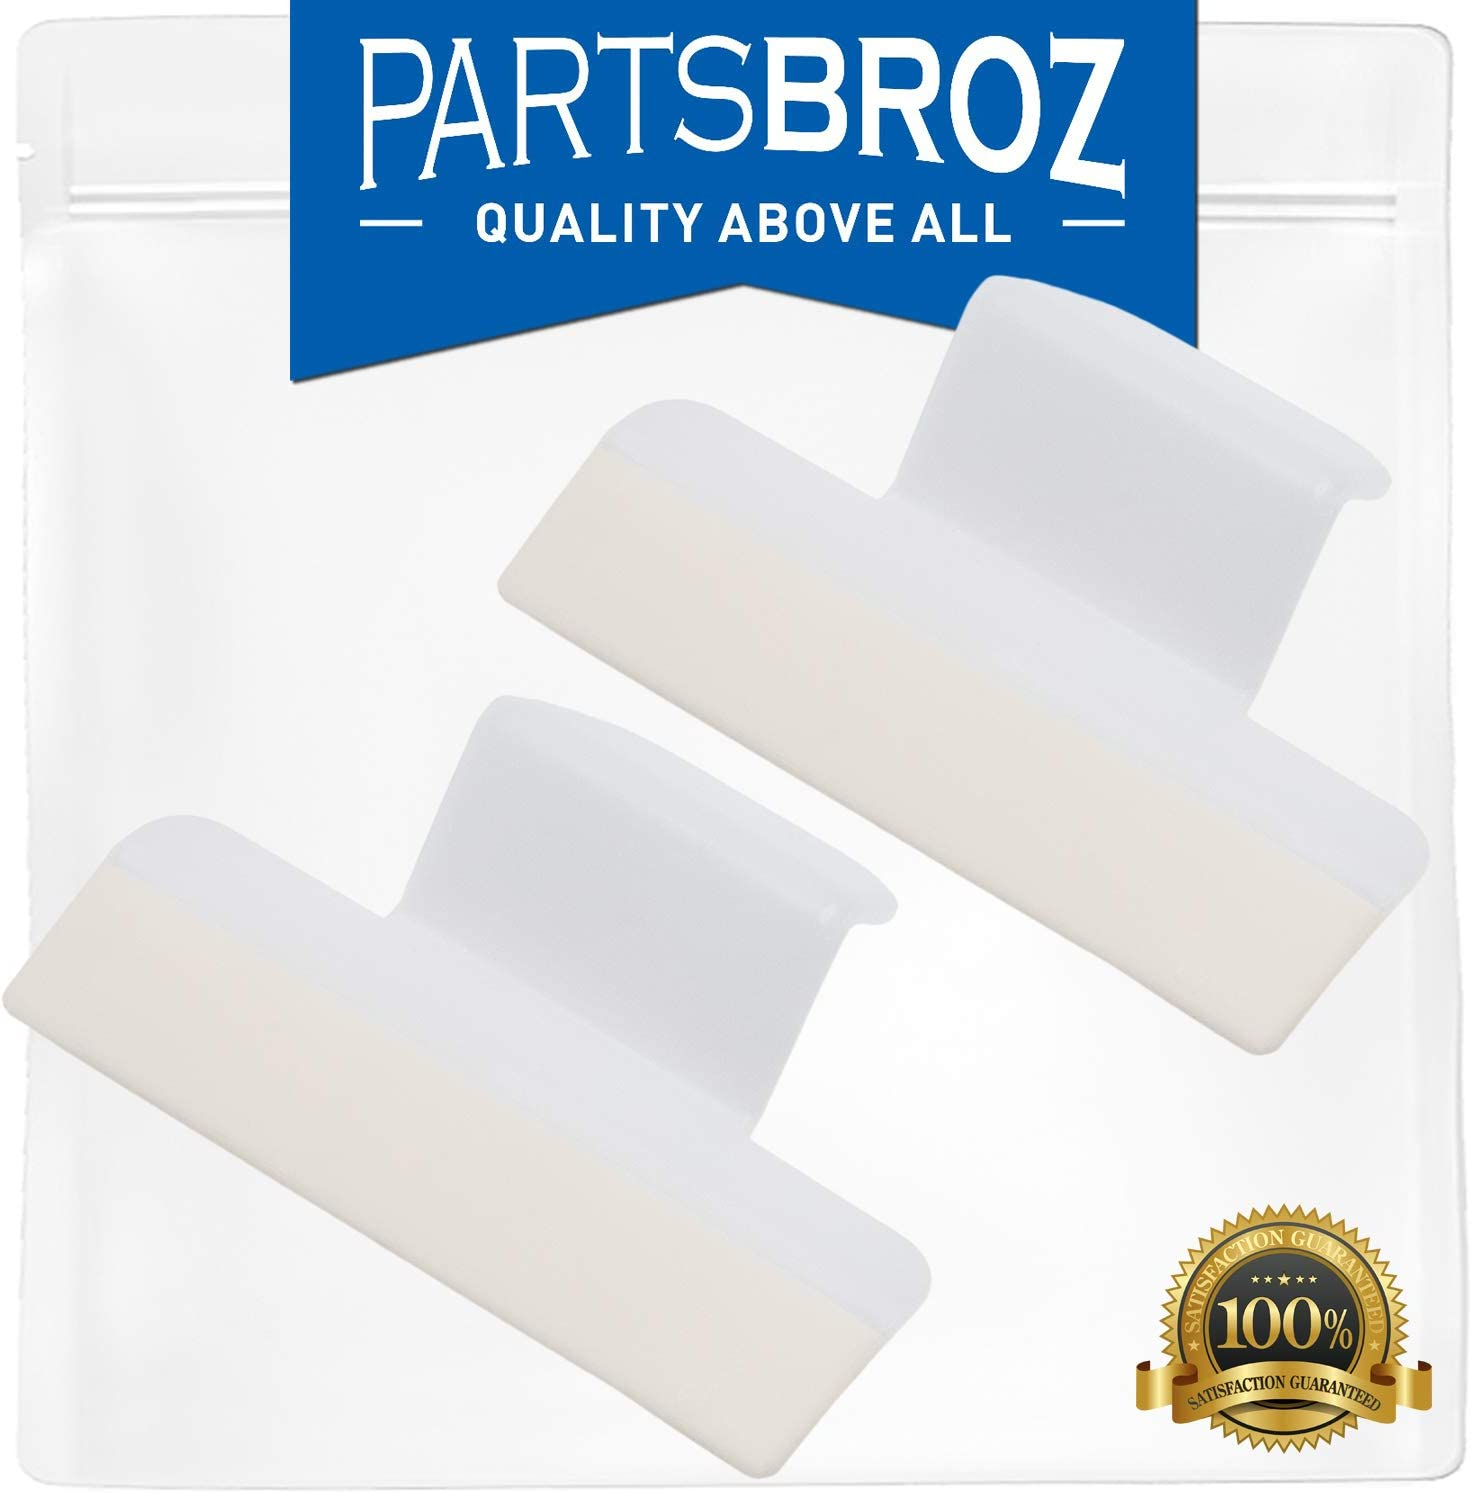 154701001 Splash Shield Kit for Frigidaire Dishwashers by PartsBroz - Replaces Part Numbers AP4338941, 1465007, 154685101, AH2203346, EA2203346, PS2203346